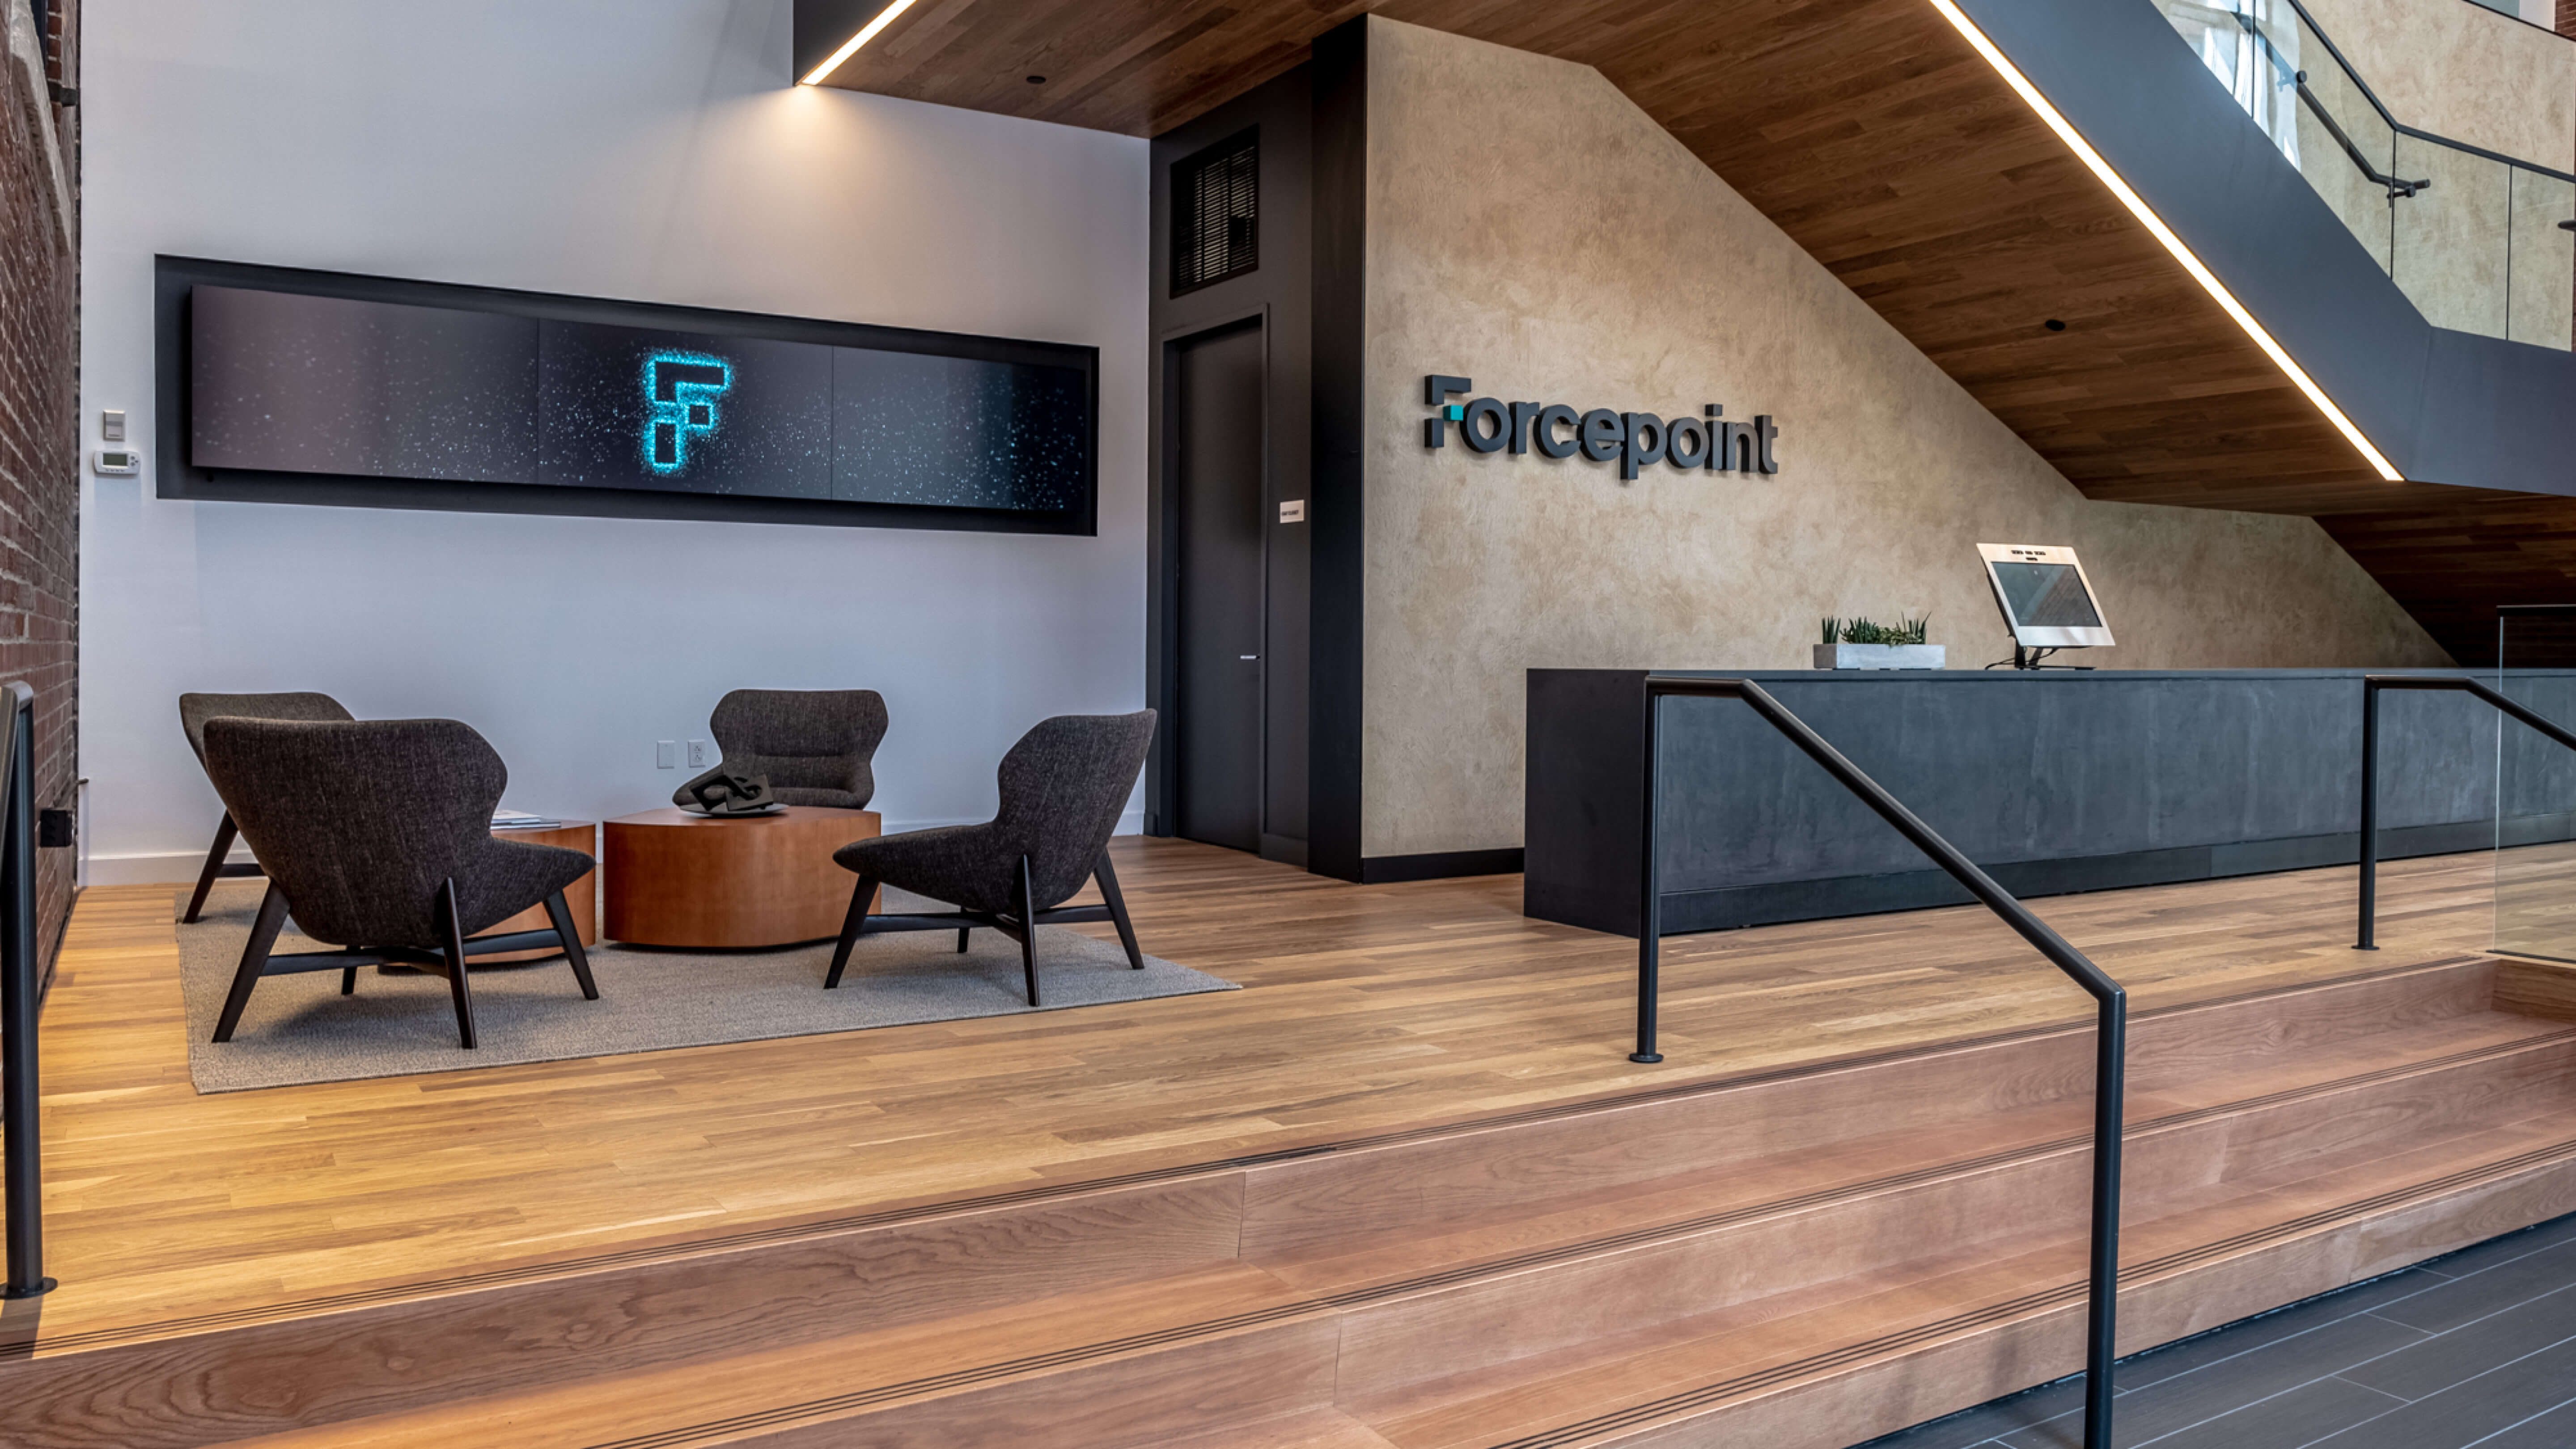 Forcepoint 18 inset